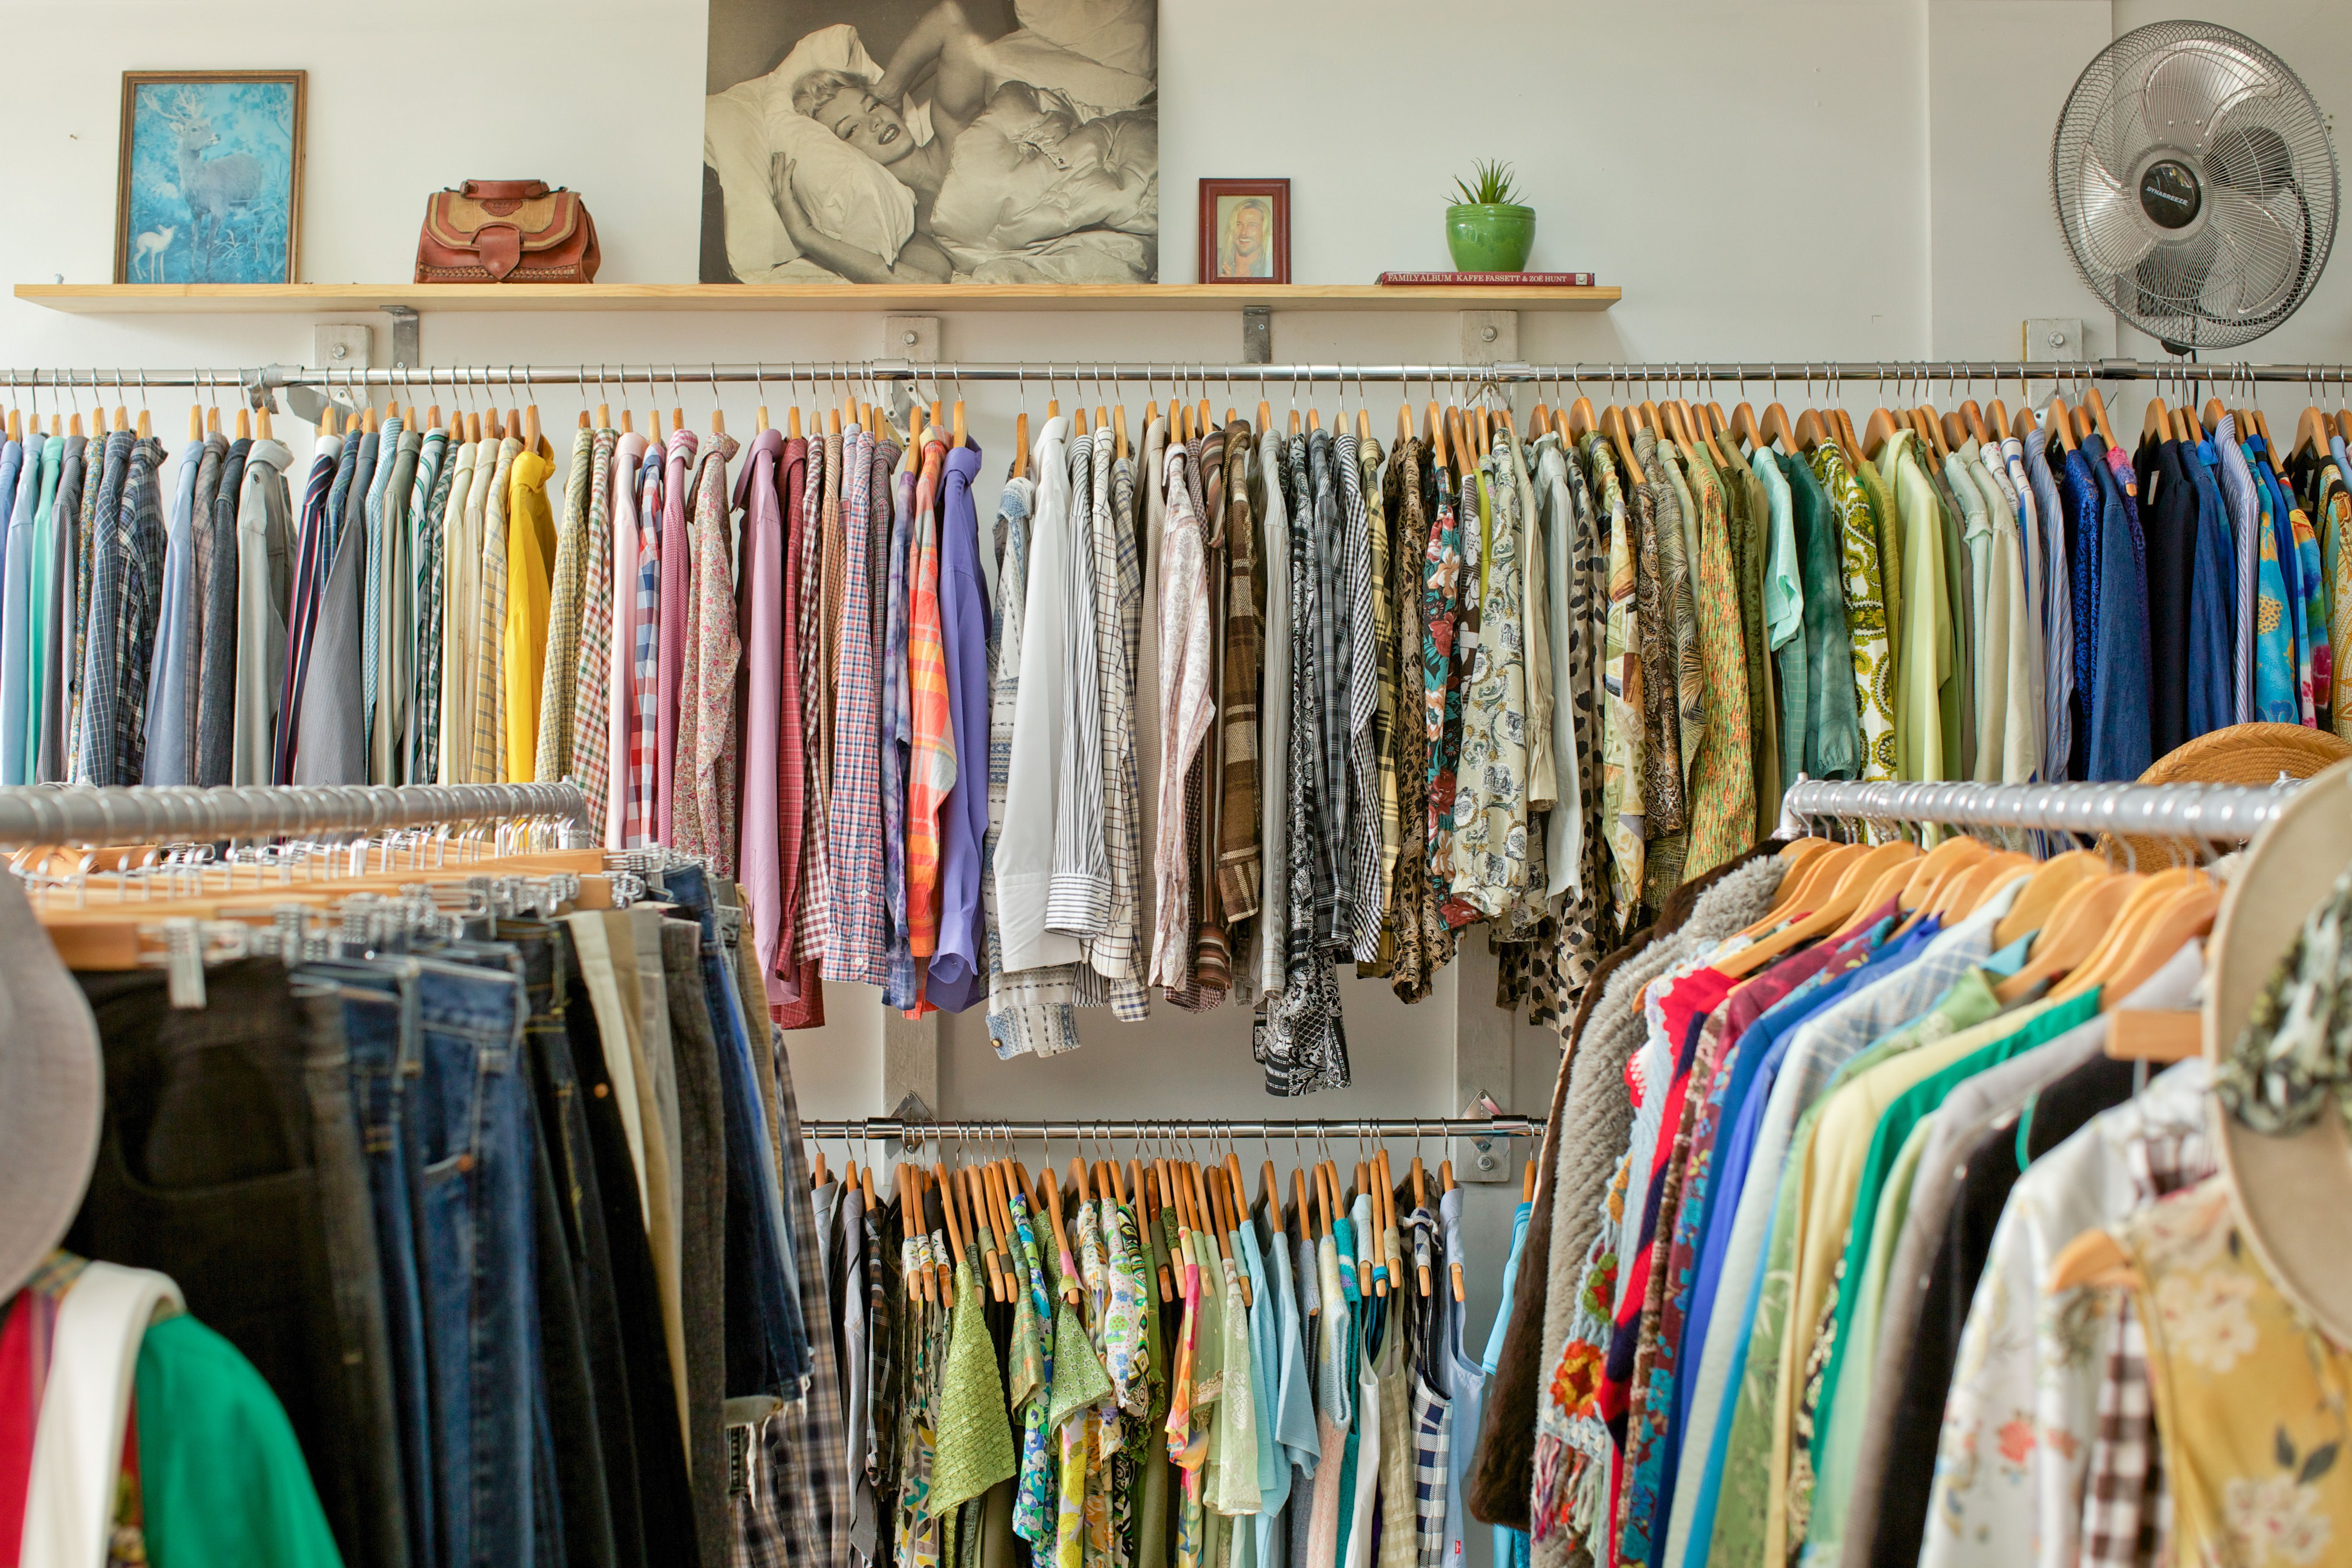 Vintage Store Vintage Clothing Retail Recycled Clothing Shop Fitout Vintage Fashion Clothing Exchange Vintage Store Recycle Clothes